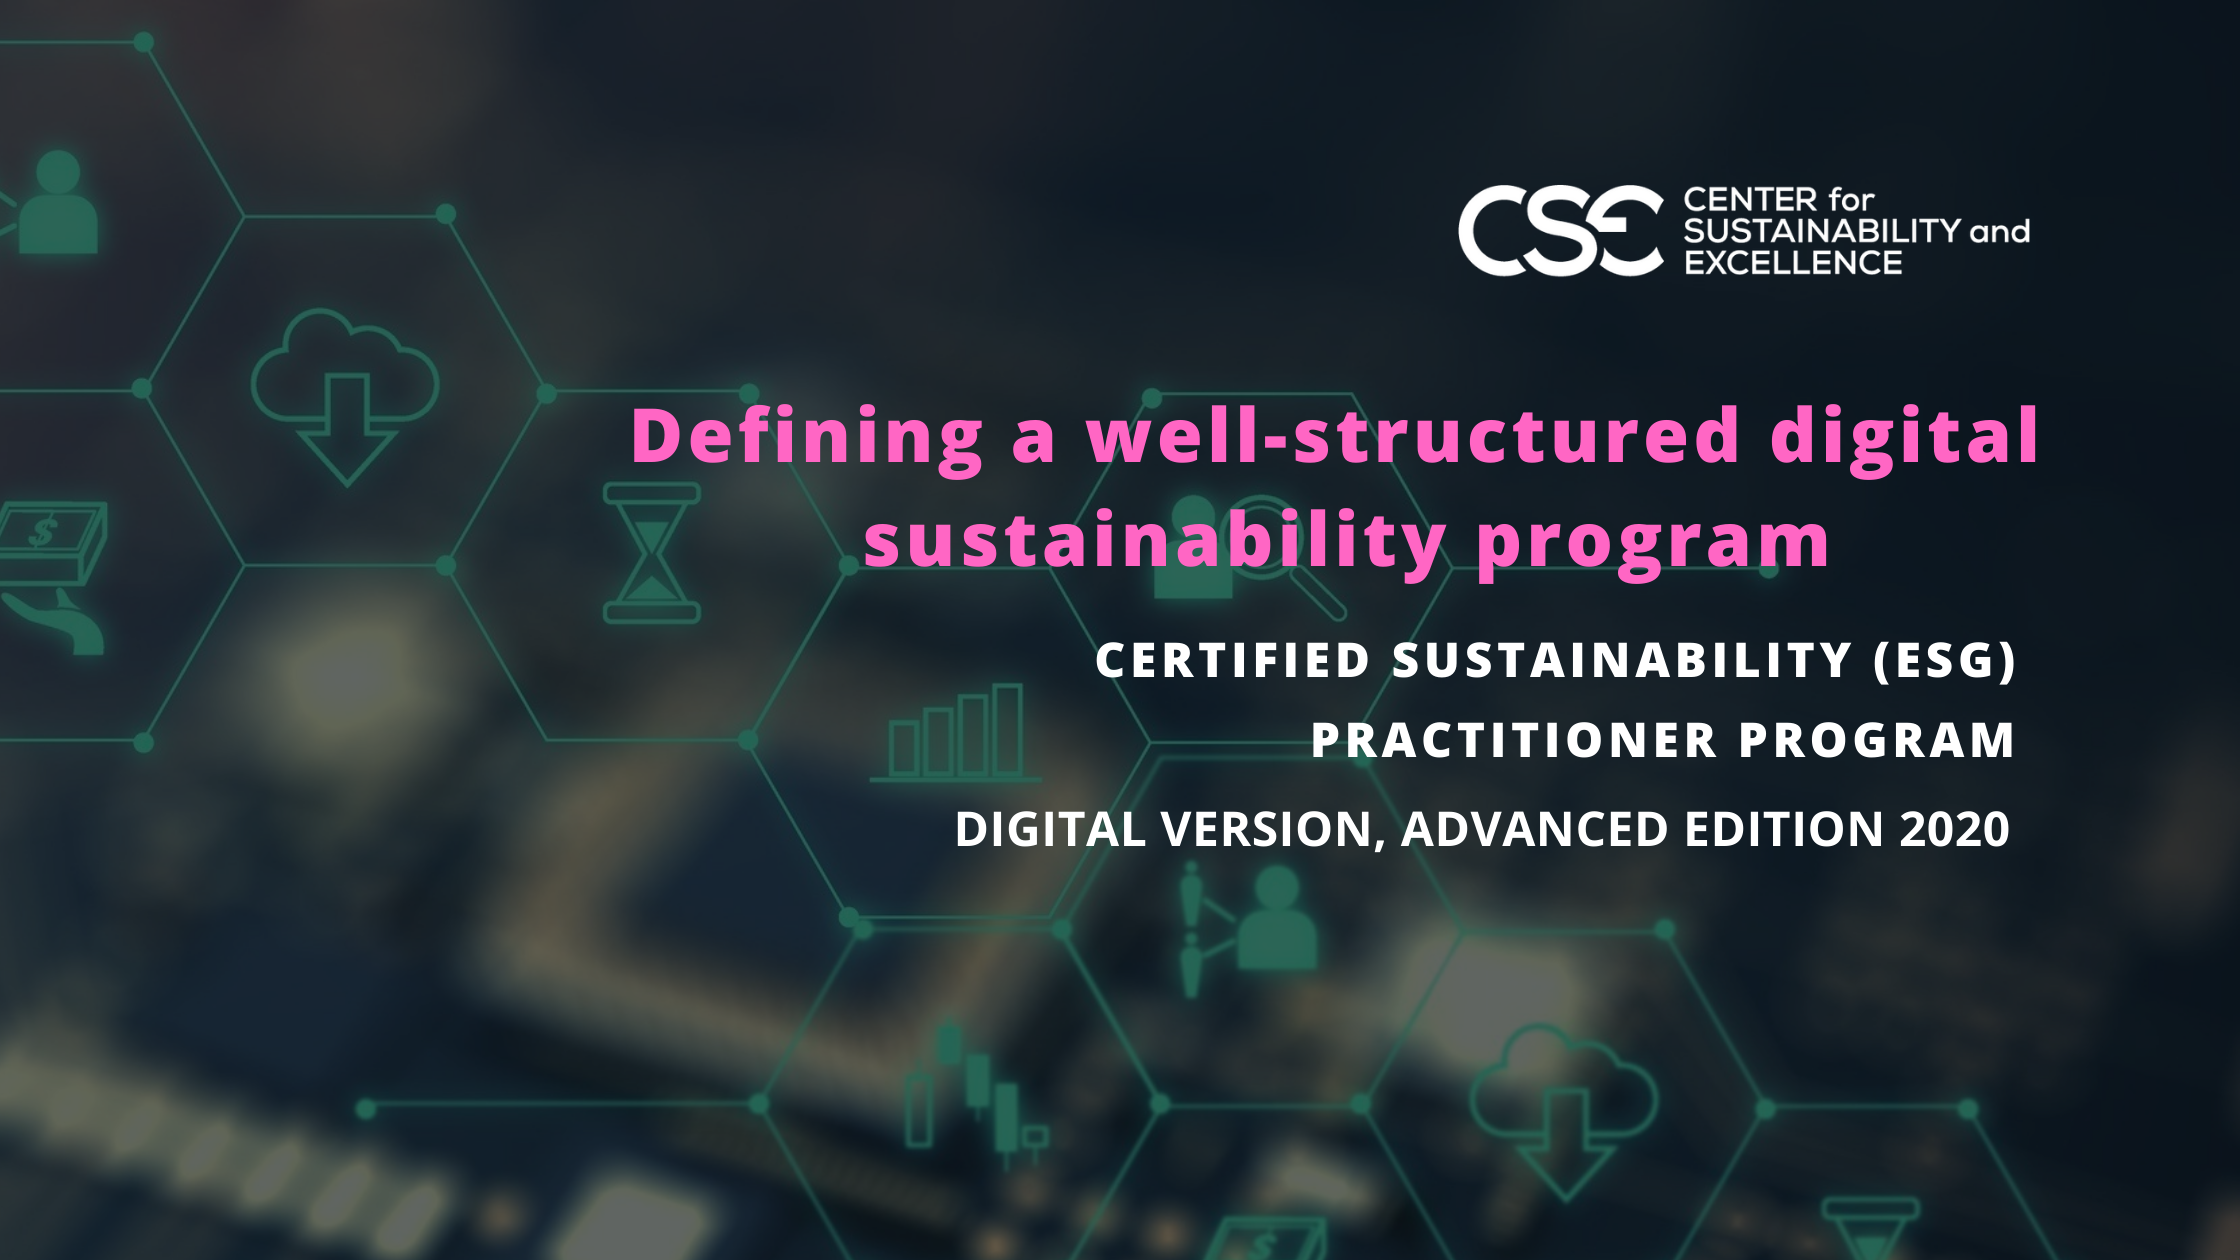 Defining a well-structured digital sustainability program